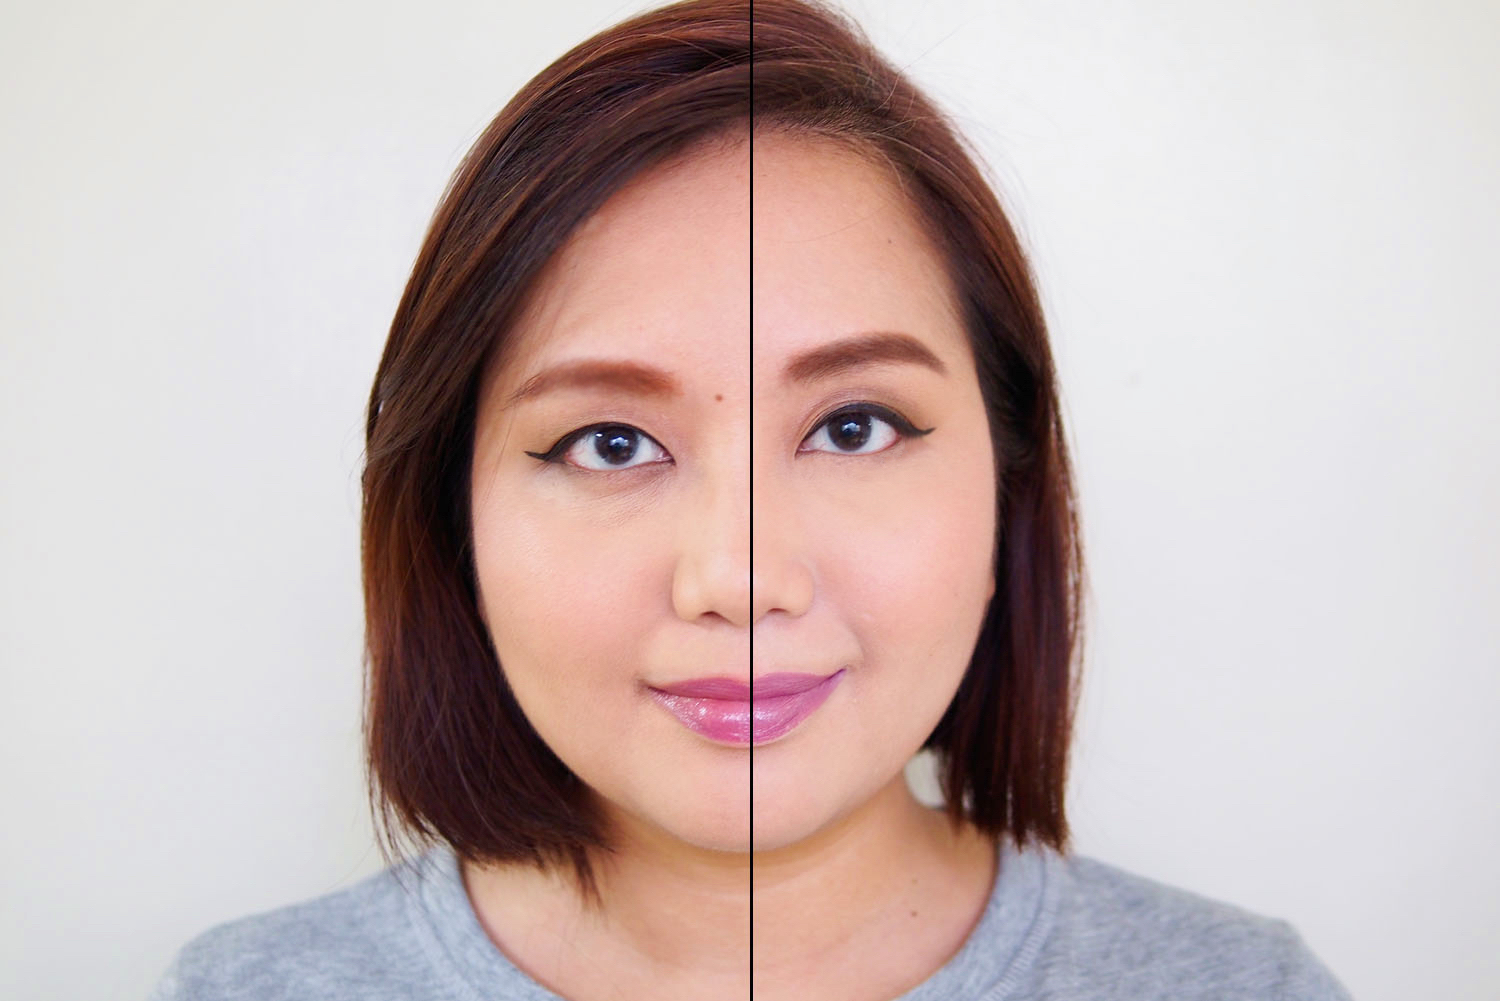 Left: Lipstick only, Right: Lipstick with concealer base